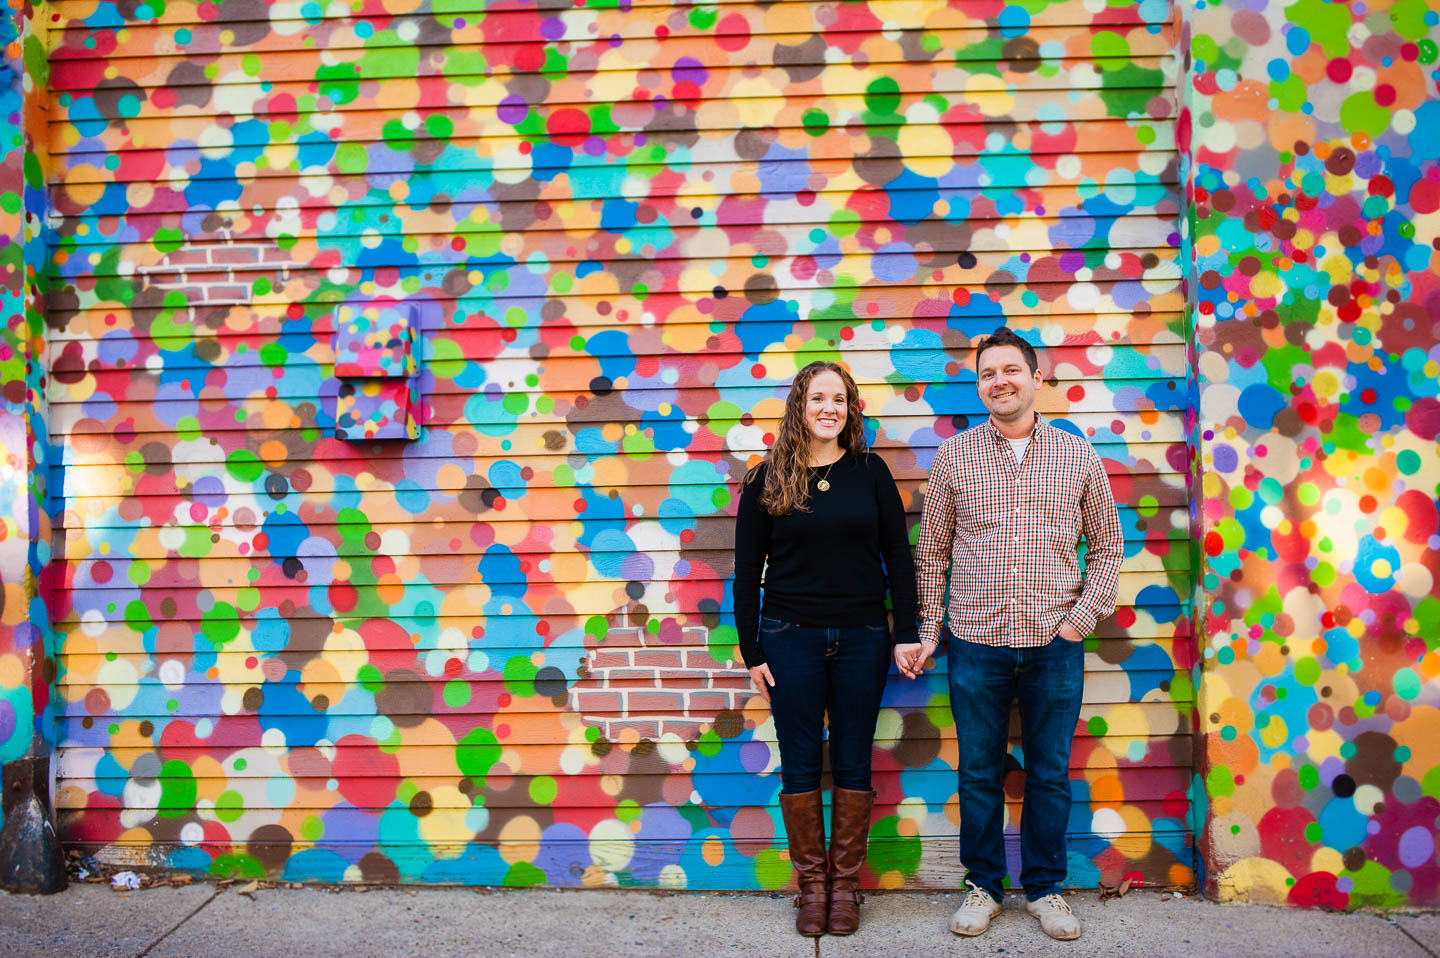 A beautiful couple poses in front of a vibrant colorful polka dot painted brick wall during there engagement session in Cambridge Massachusetts